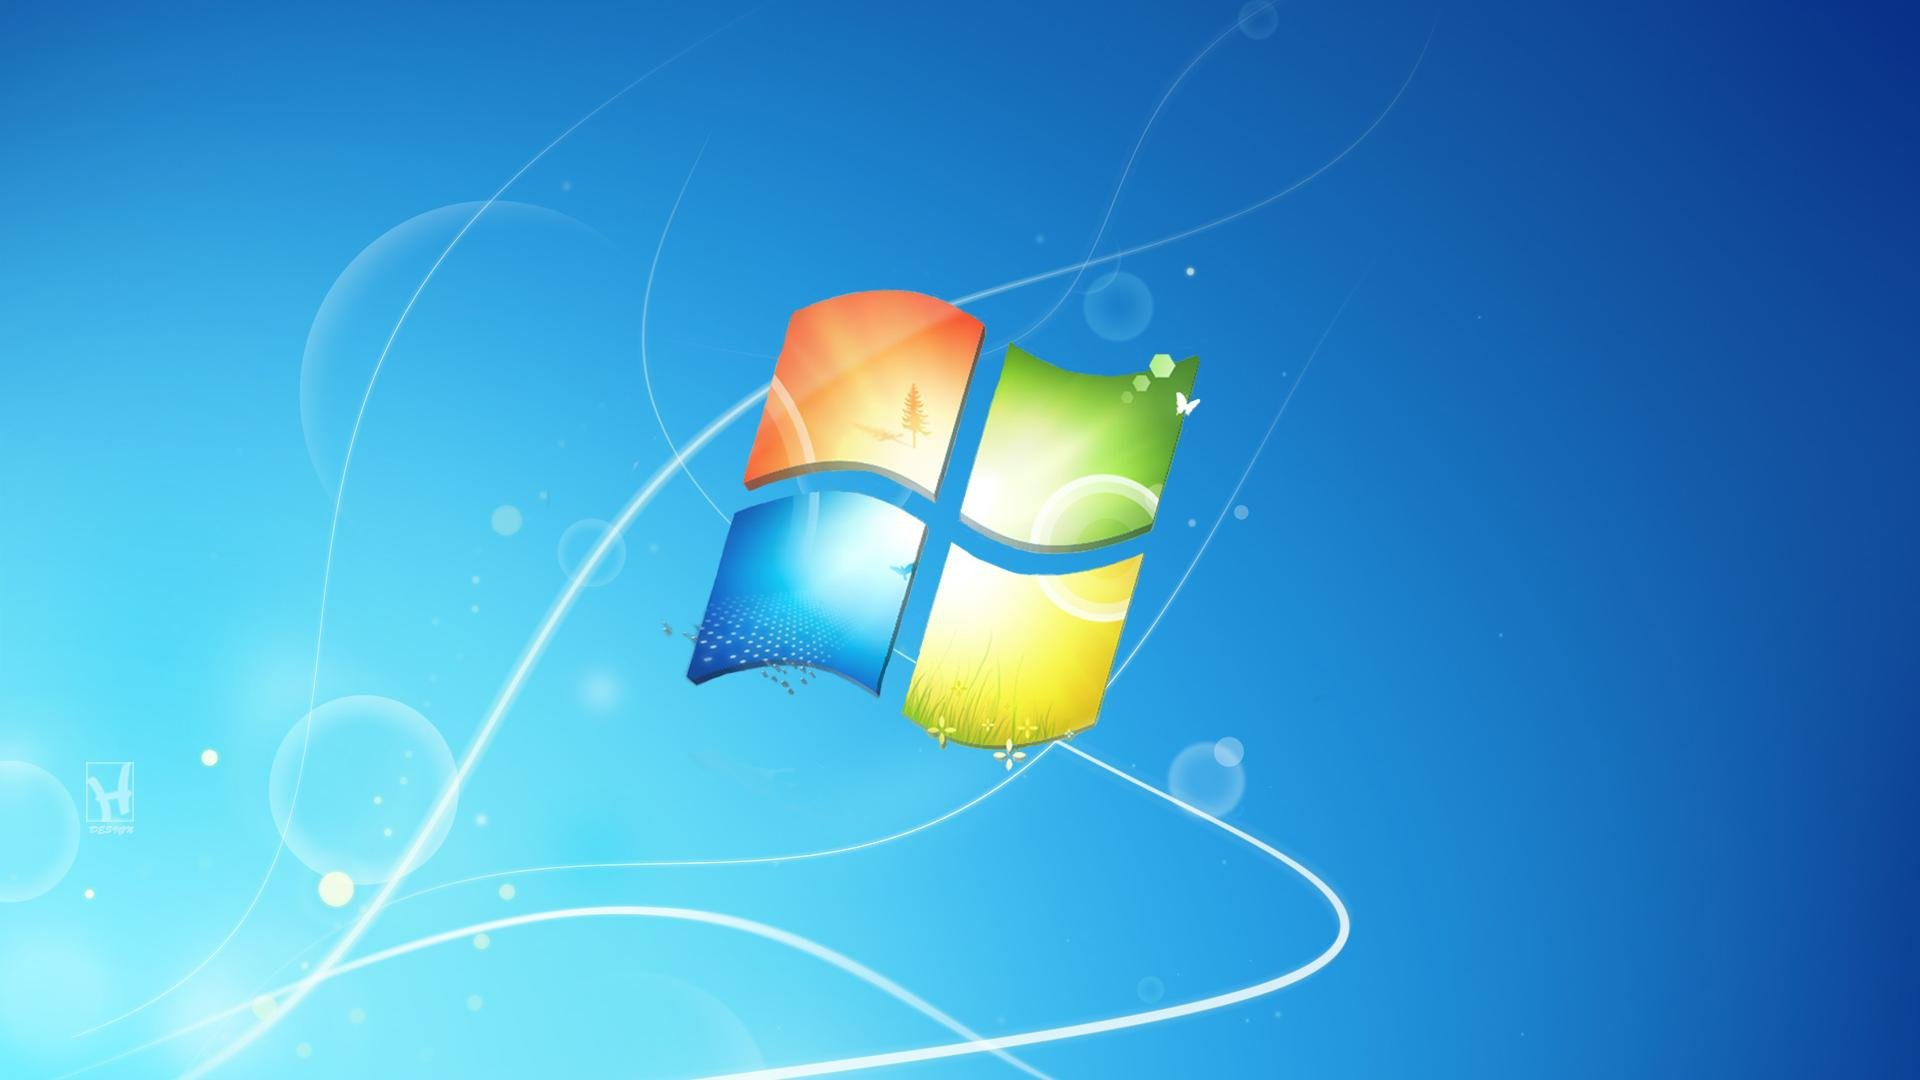 Background Windows Xp System Widescreen and HD background Wallpaper 1920x1080